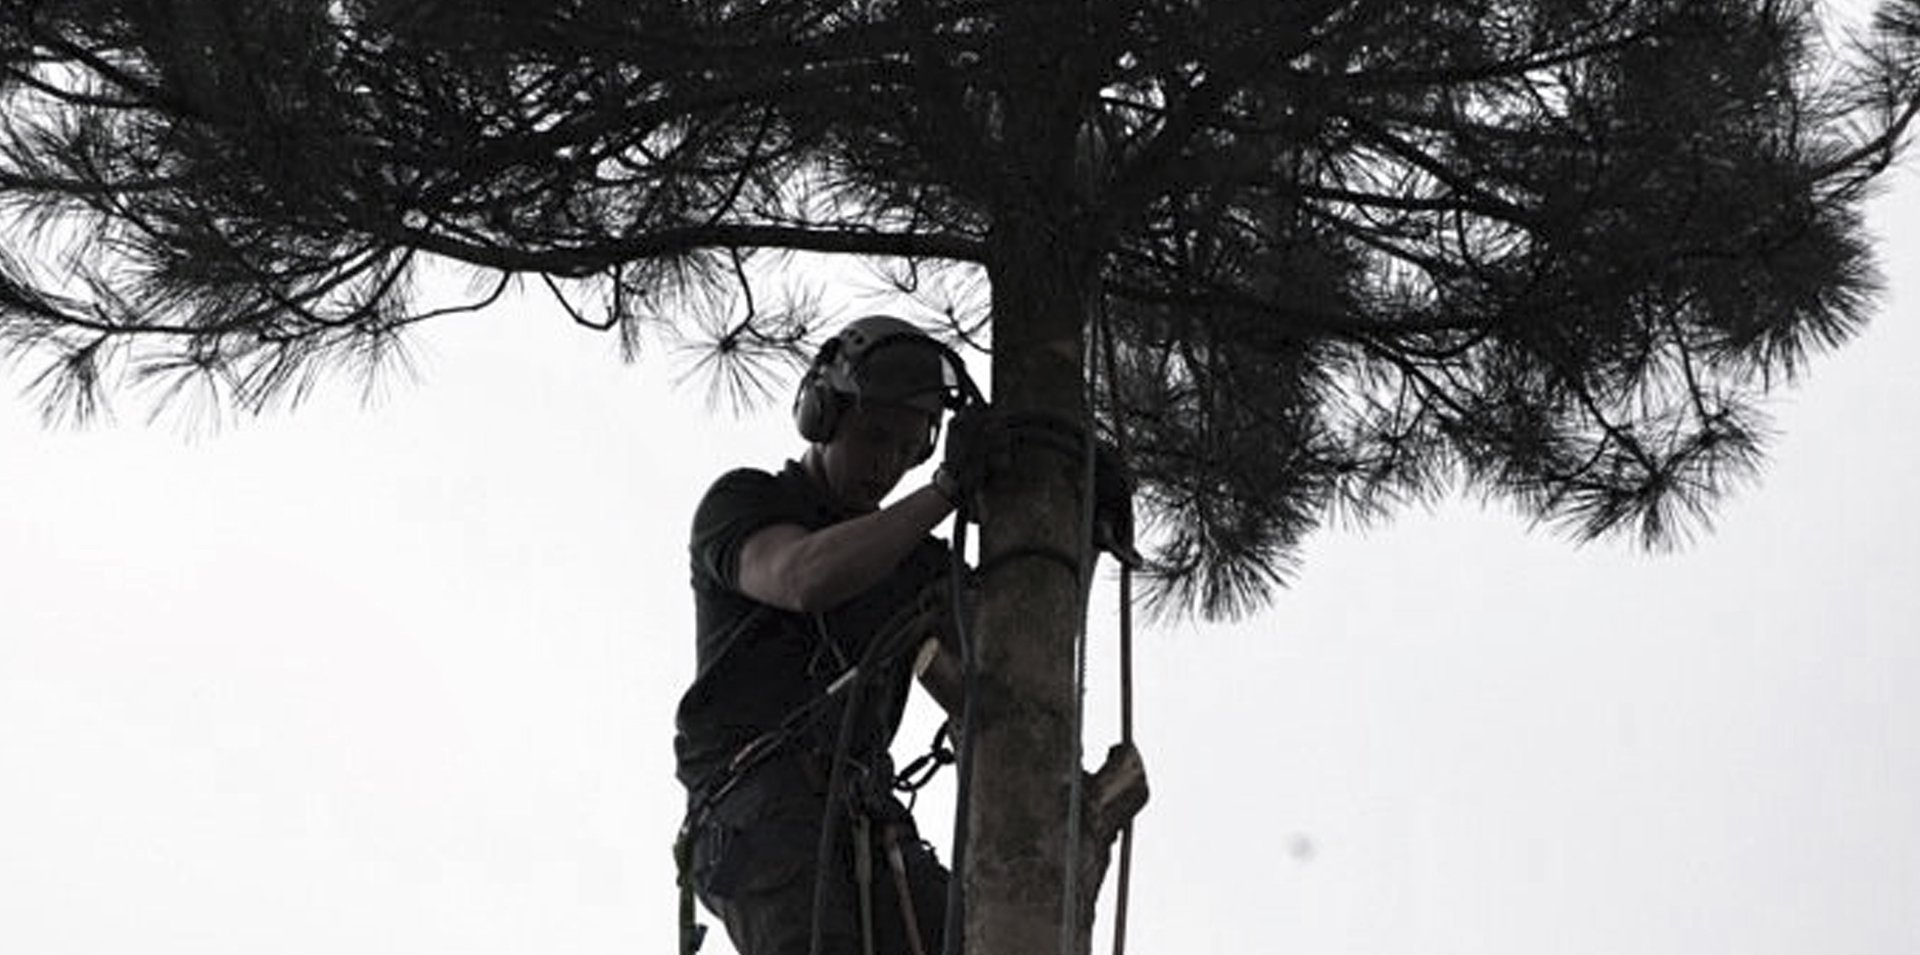 tree surgeon at work